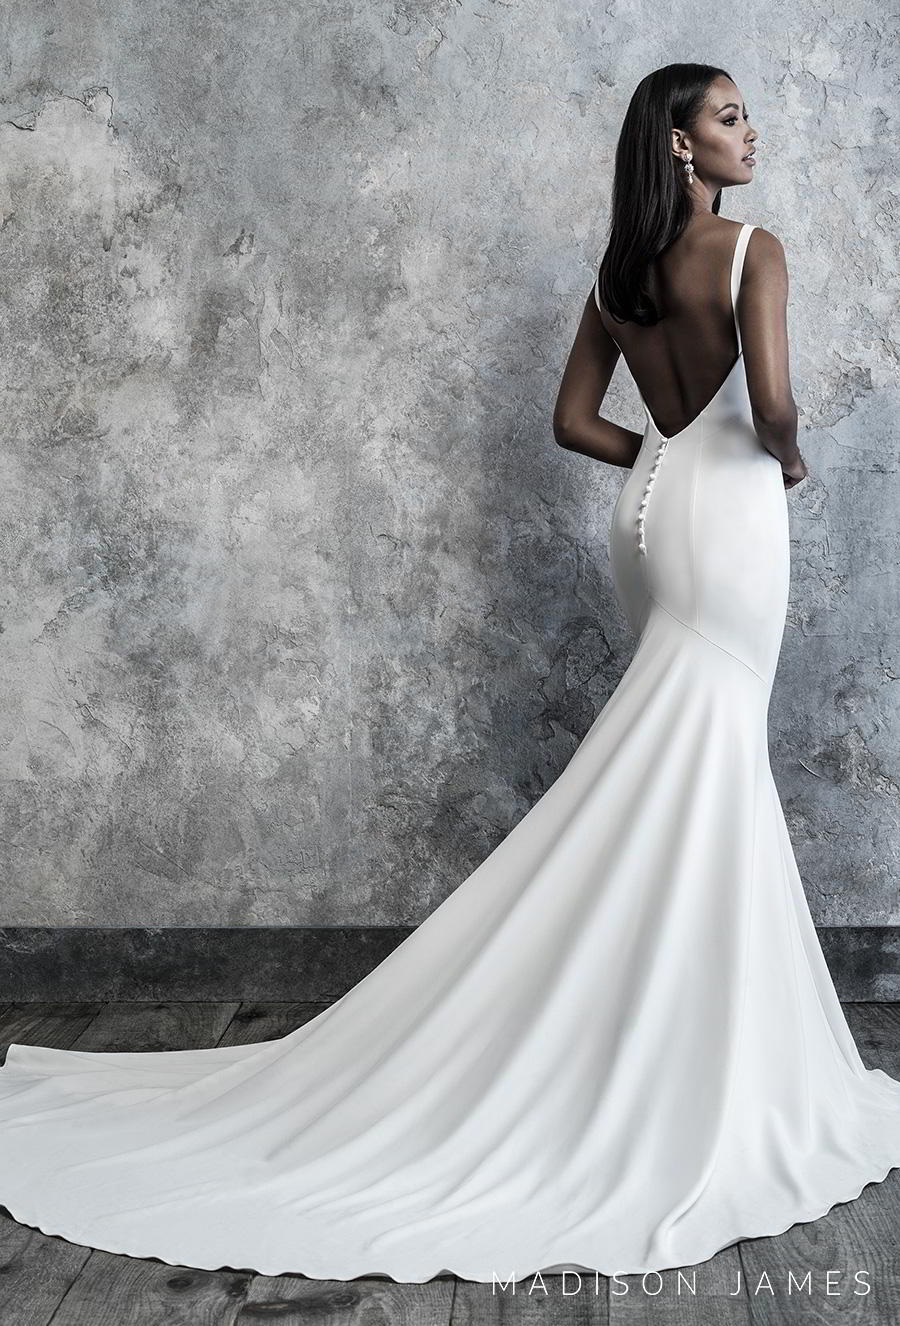 madison james 2019 bridal sleeveless with strap deep v neck simple minimalist elegant classy fit and flare wedding dress backless low v back chapel train (504) bv